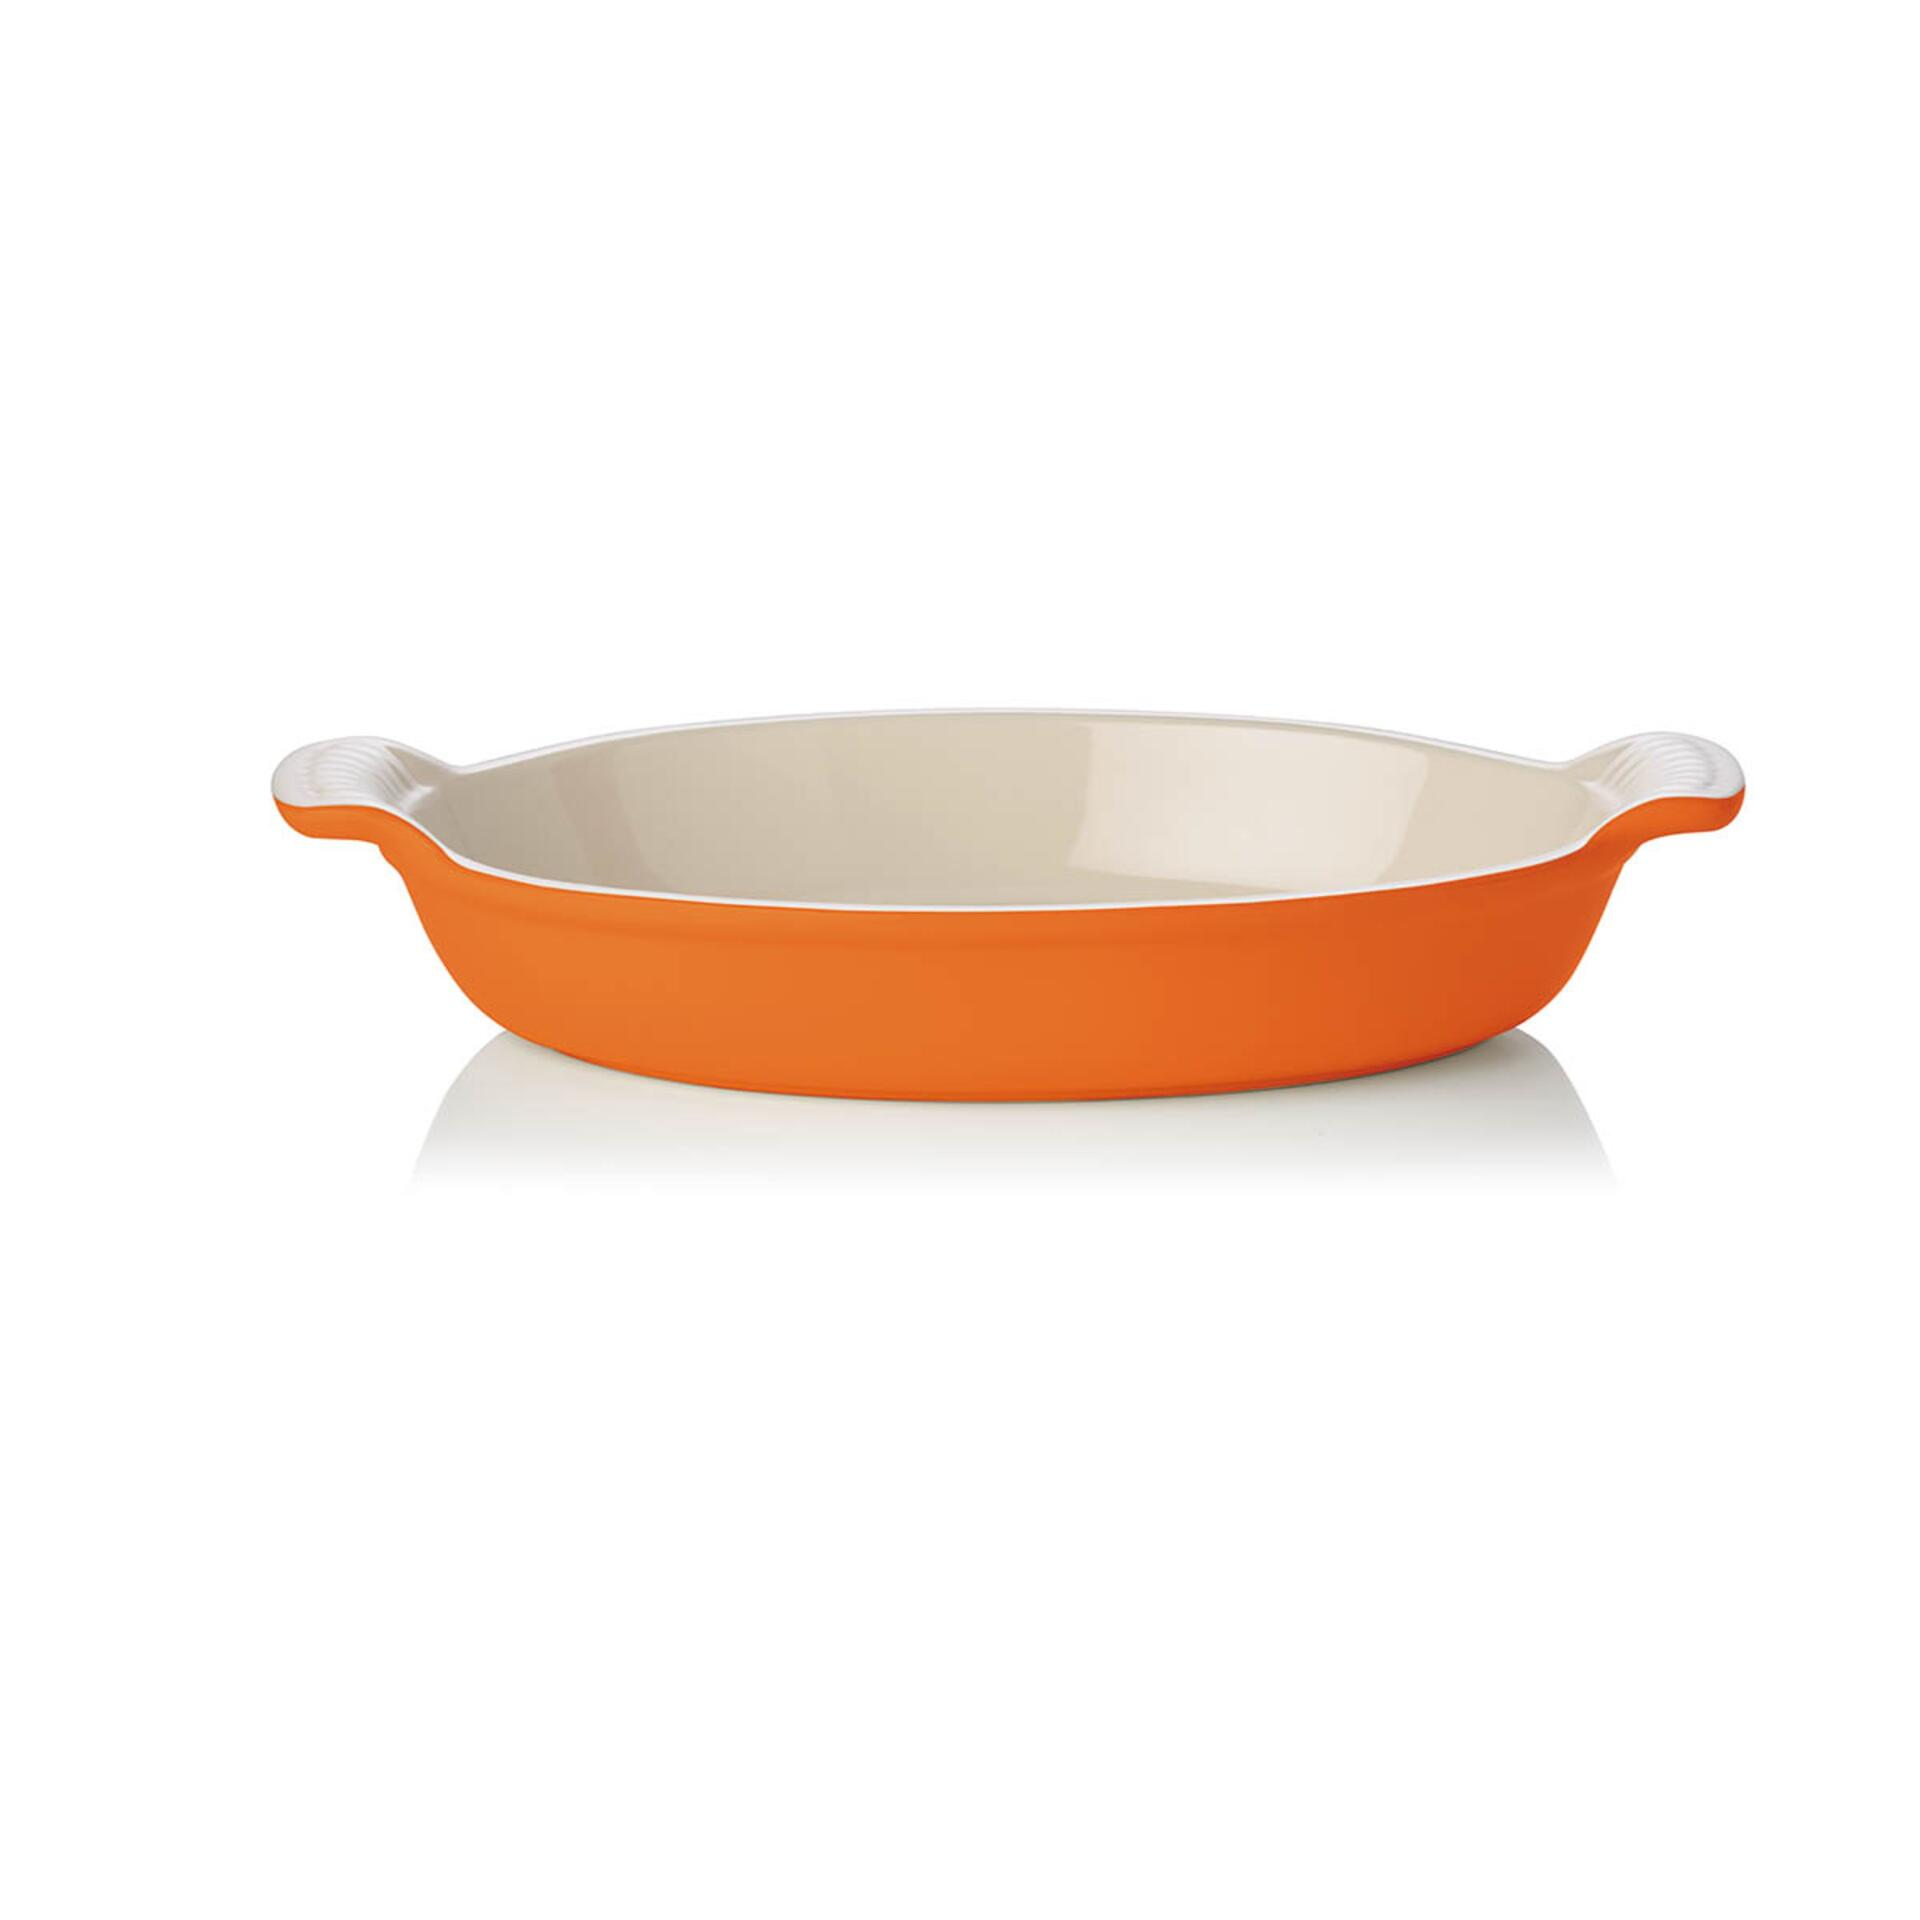 Le Creuset Auflaufform Tradition oval 36 cm Ofenrot